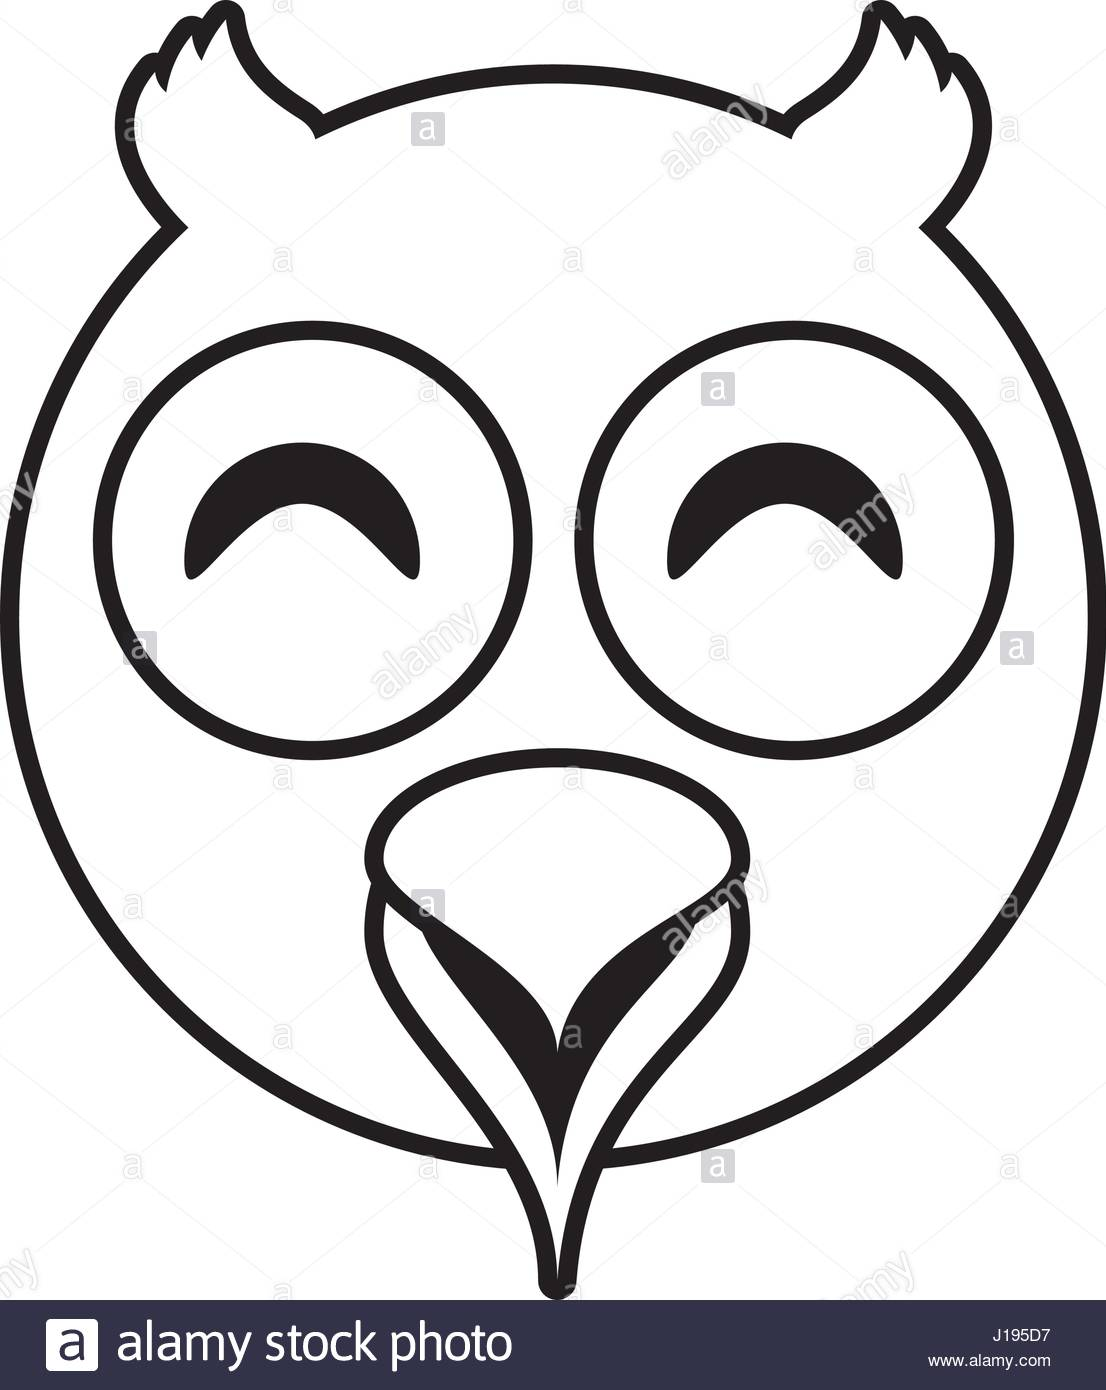 1106x1390 Owl Face Animal Outline Stock Vector Art Amp Illustration, Vector